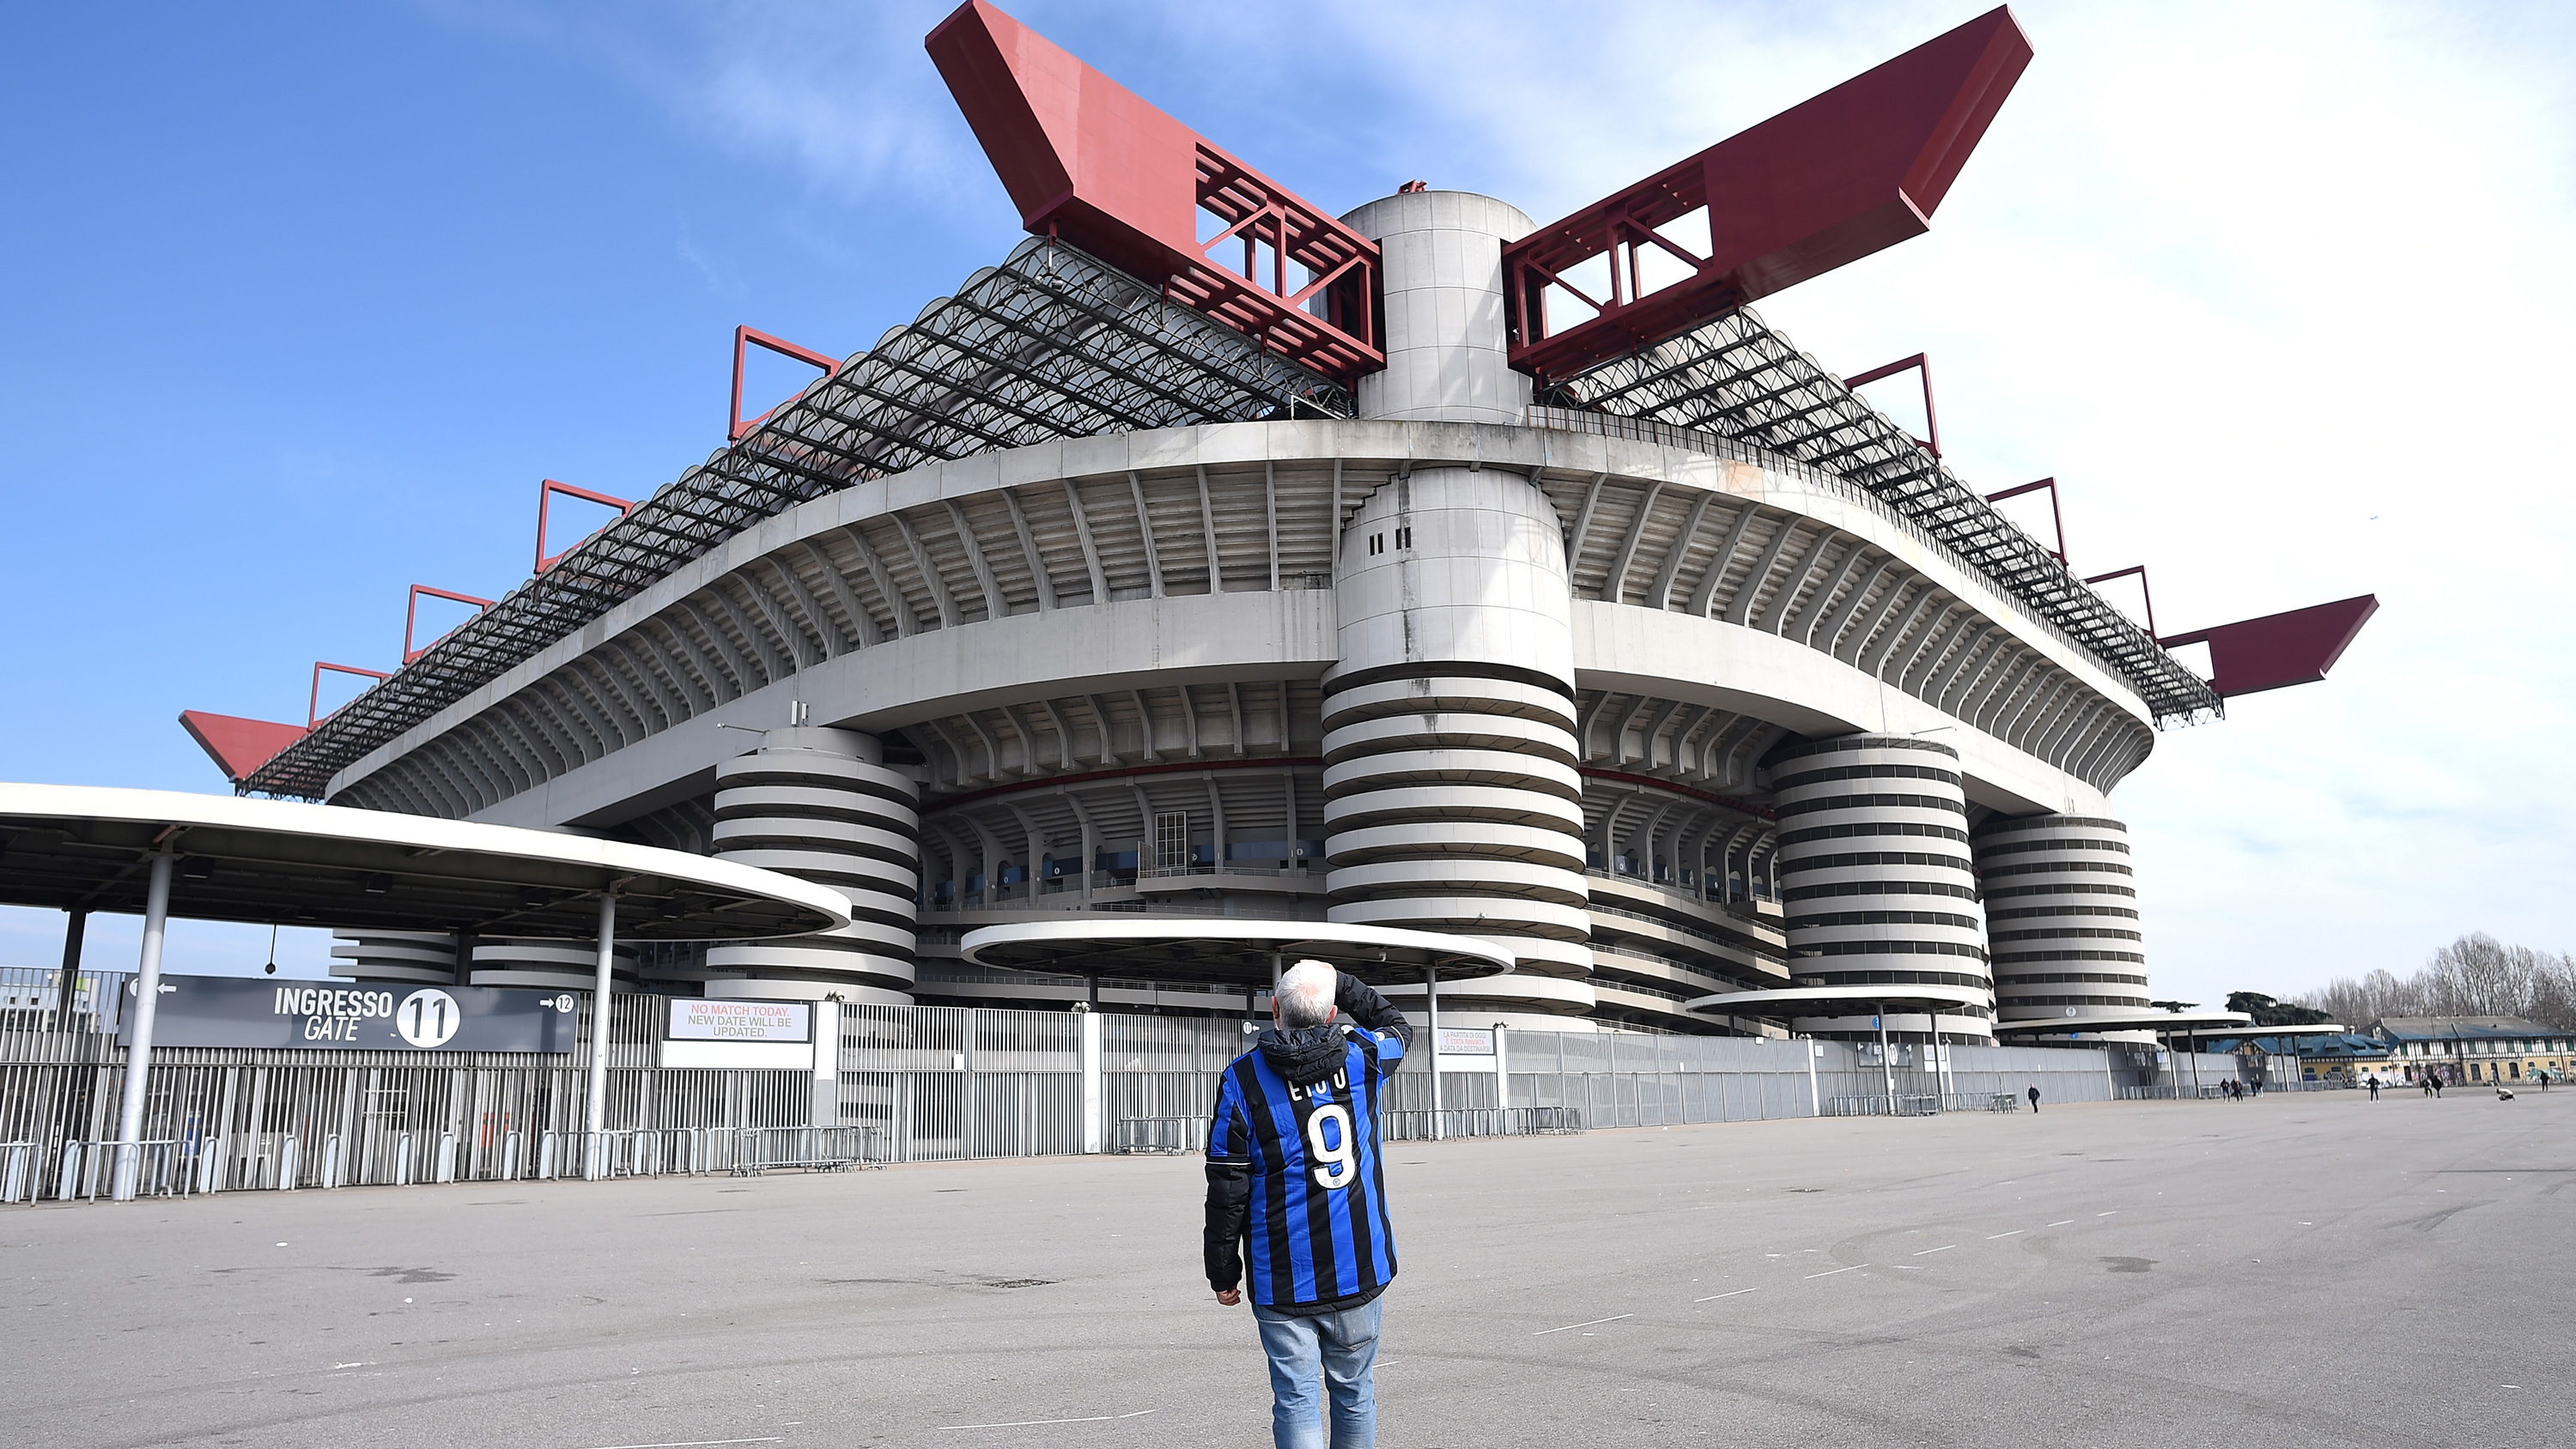 The picture shows a man wearing a fan jersey in an empty lot in front of a massive stadium.